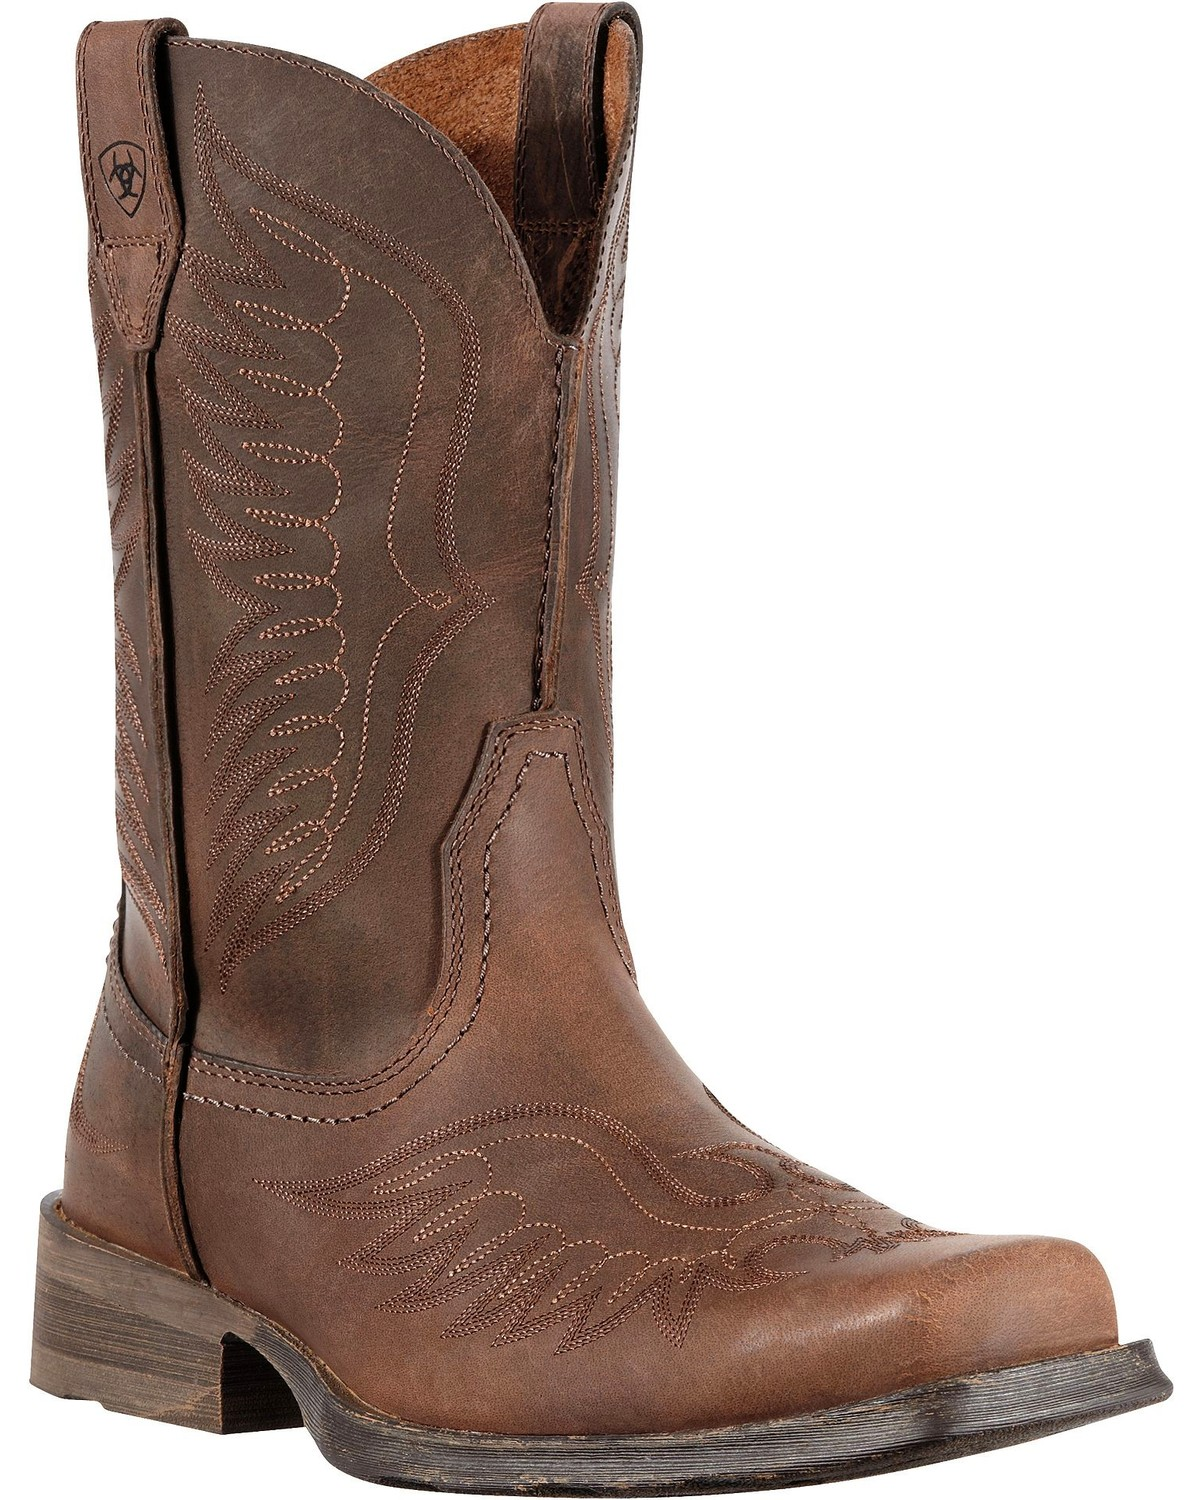 Ariat Rambler Boots Canada - All About Boots